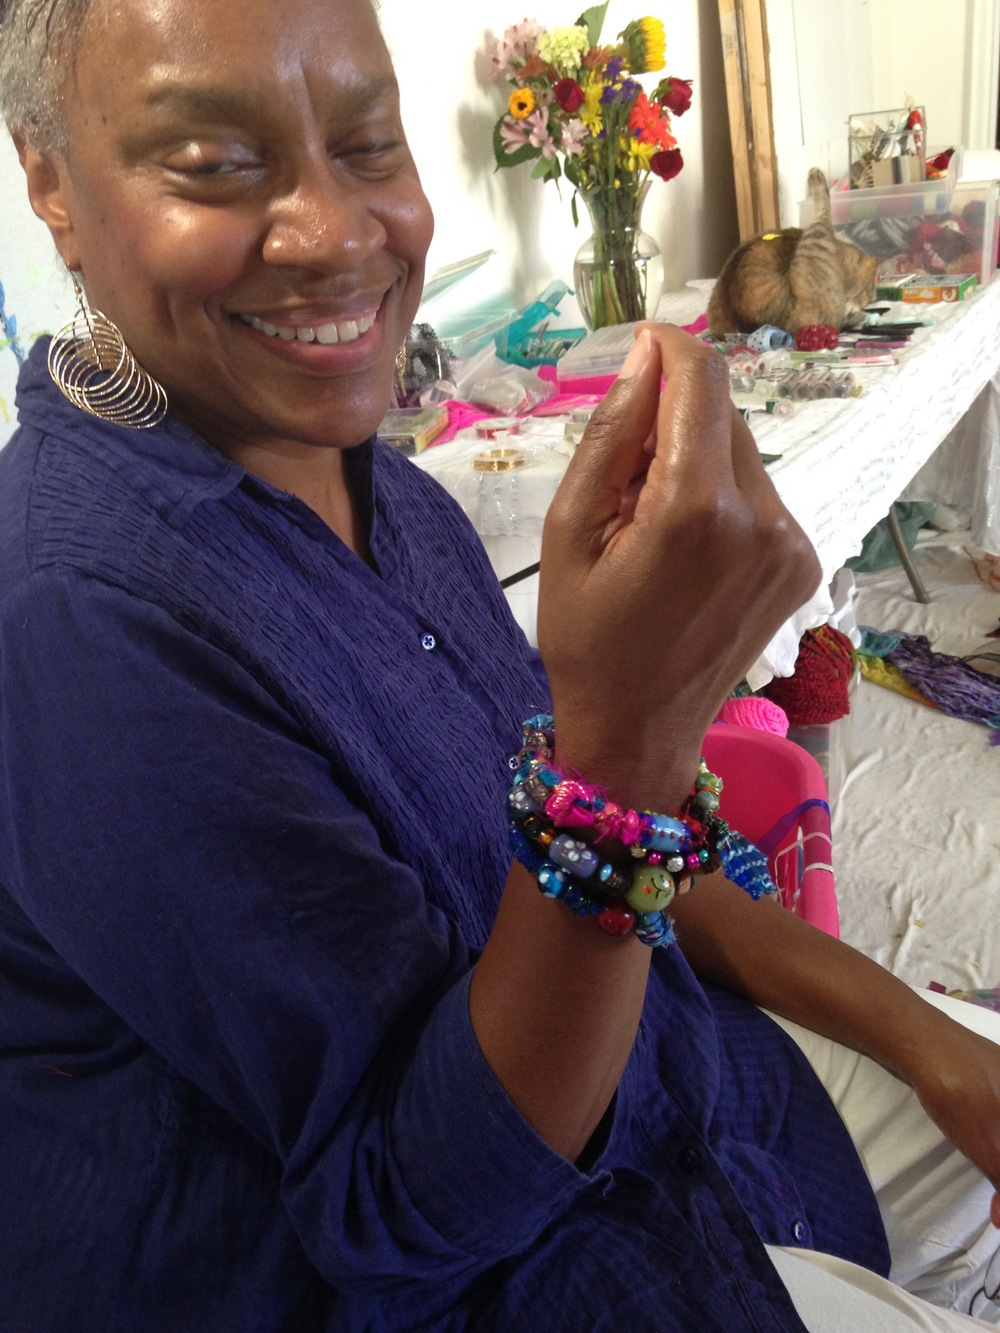 Meet Carol Moncrief co-host of the day and general instigator of the whole affair as she is always looking for another opportunity to make the Bohemian Goddess Bracelets! Carol is also a paper crafter extraordinaire and specializes in creating and teaching the craft of handmade greeting cards.